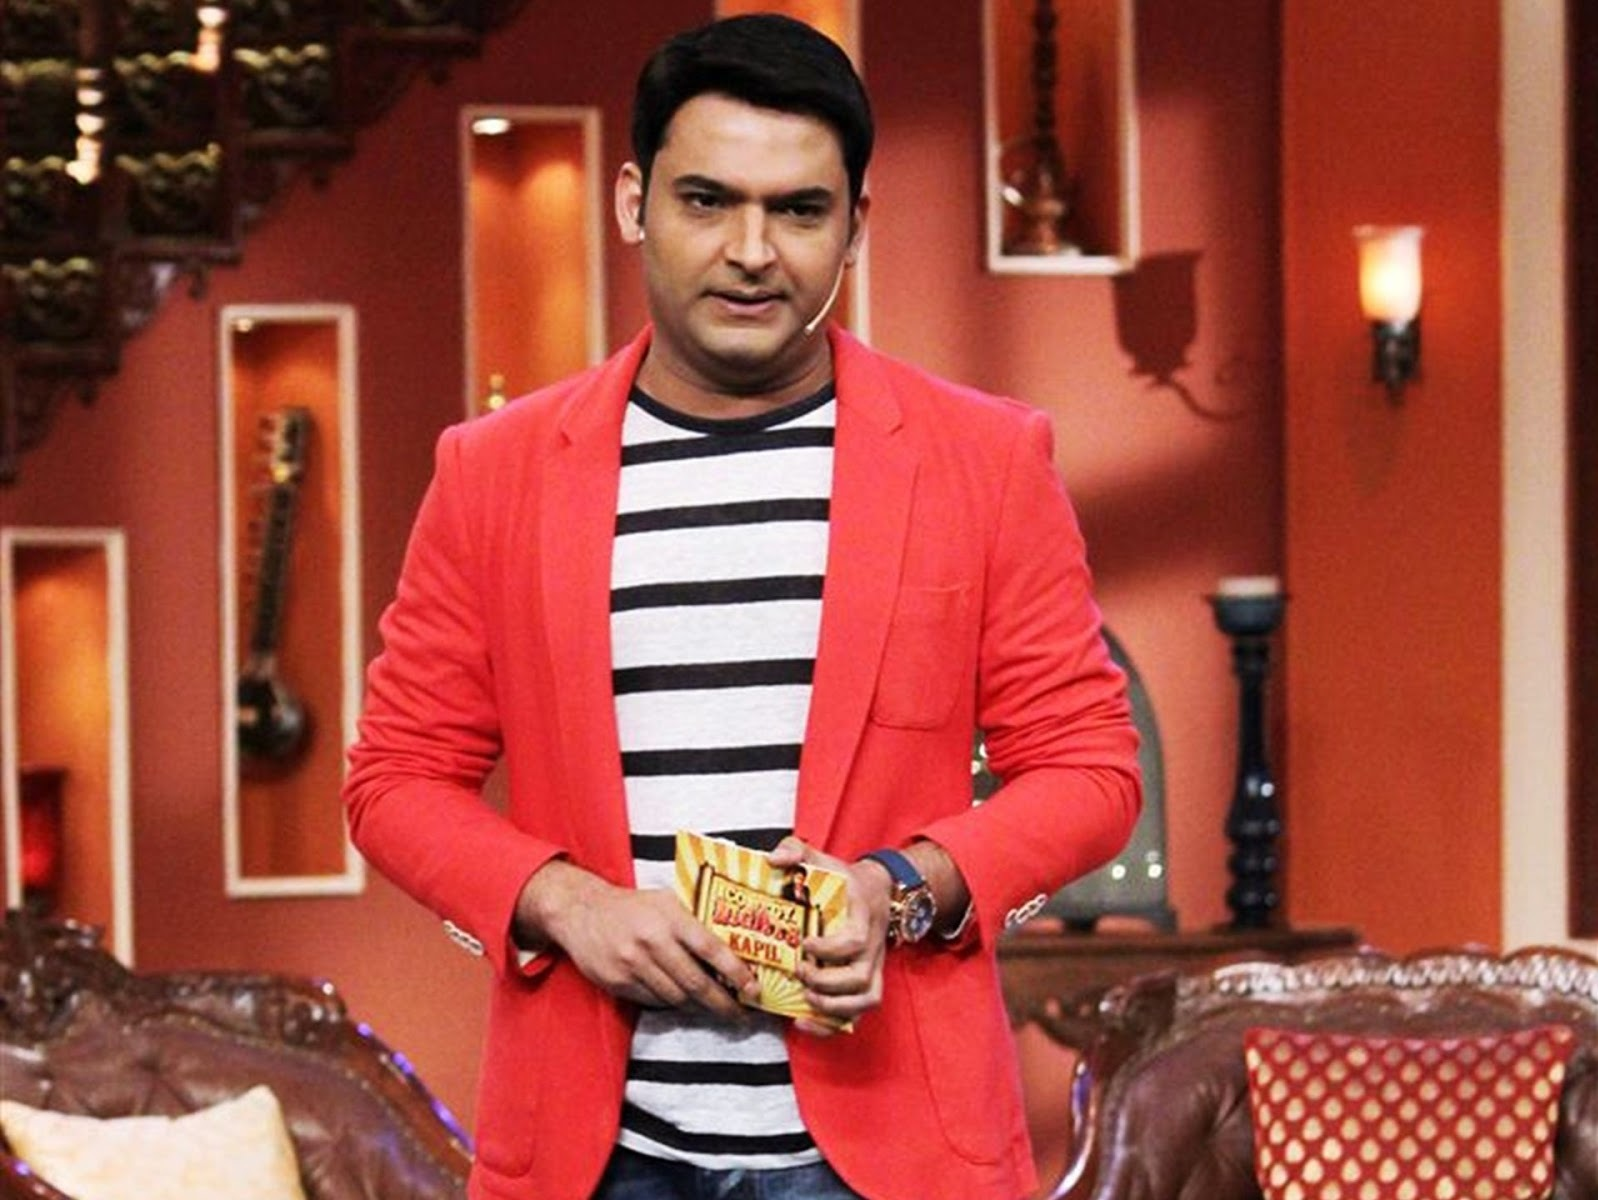 Kapil, Kapil Sharma, Kapil's  Angrezipanti, Kapil's Funny English, Kapil's English, Kapil's Video On Angrezipanti